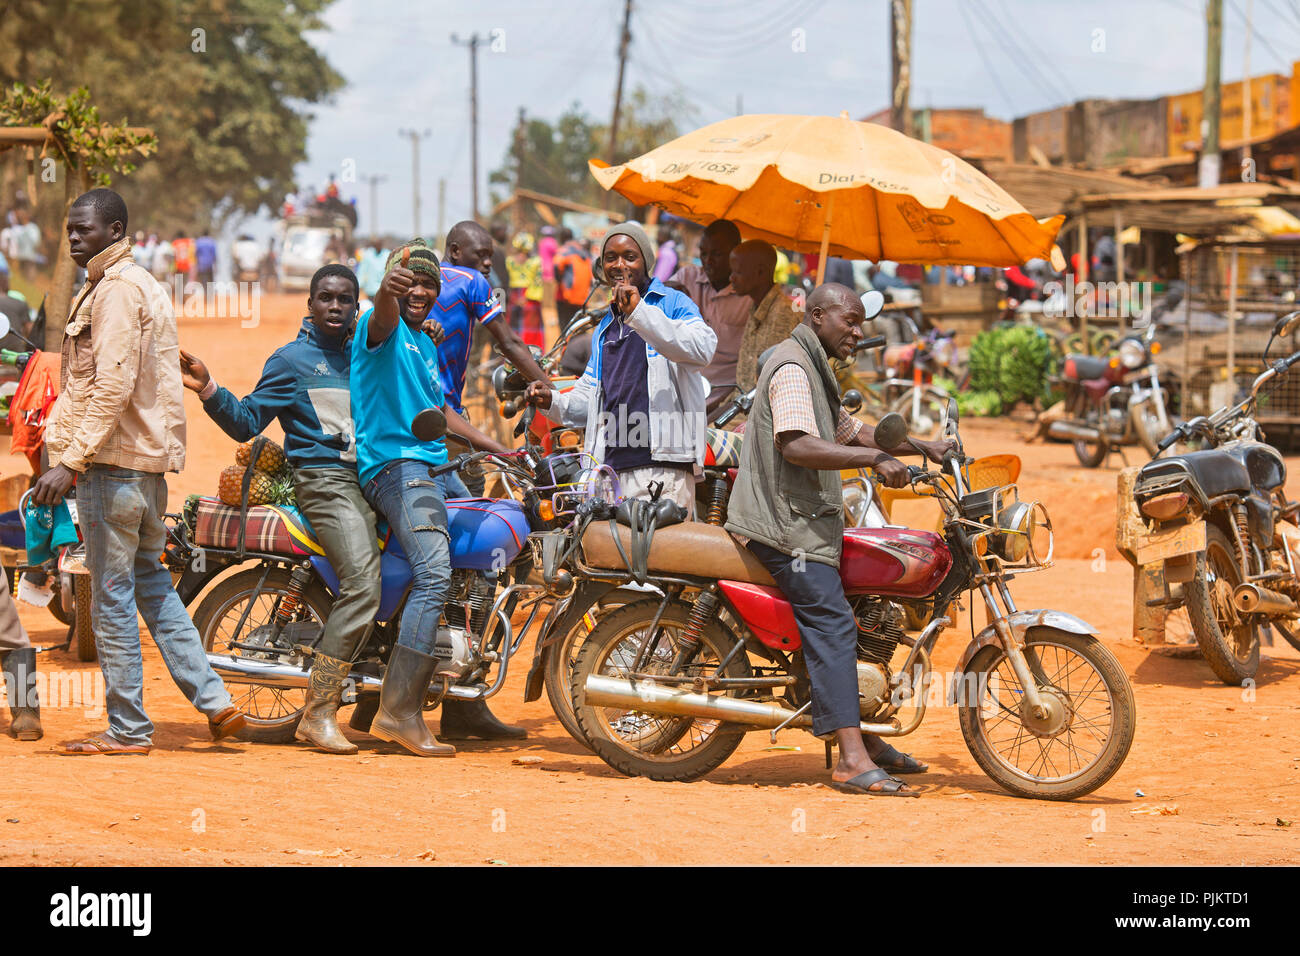 Small Town, Street Scene, Men with Motorcycles Local Transport, Motorbike Taxis, Uganda, East Africa - Stock Image